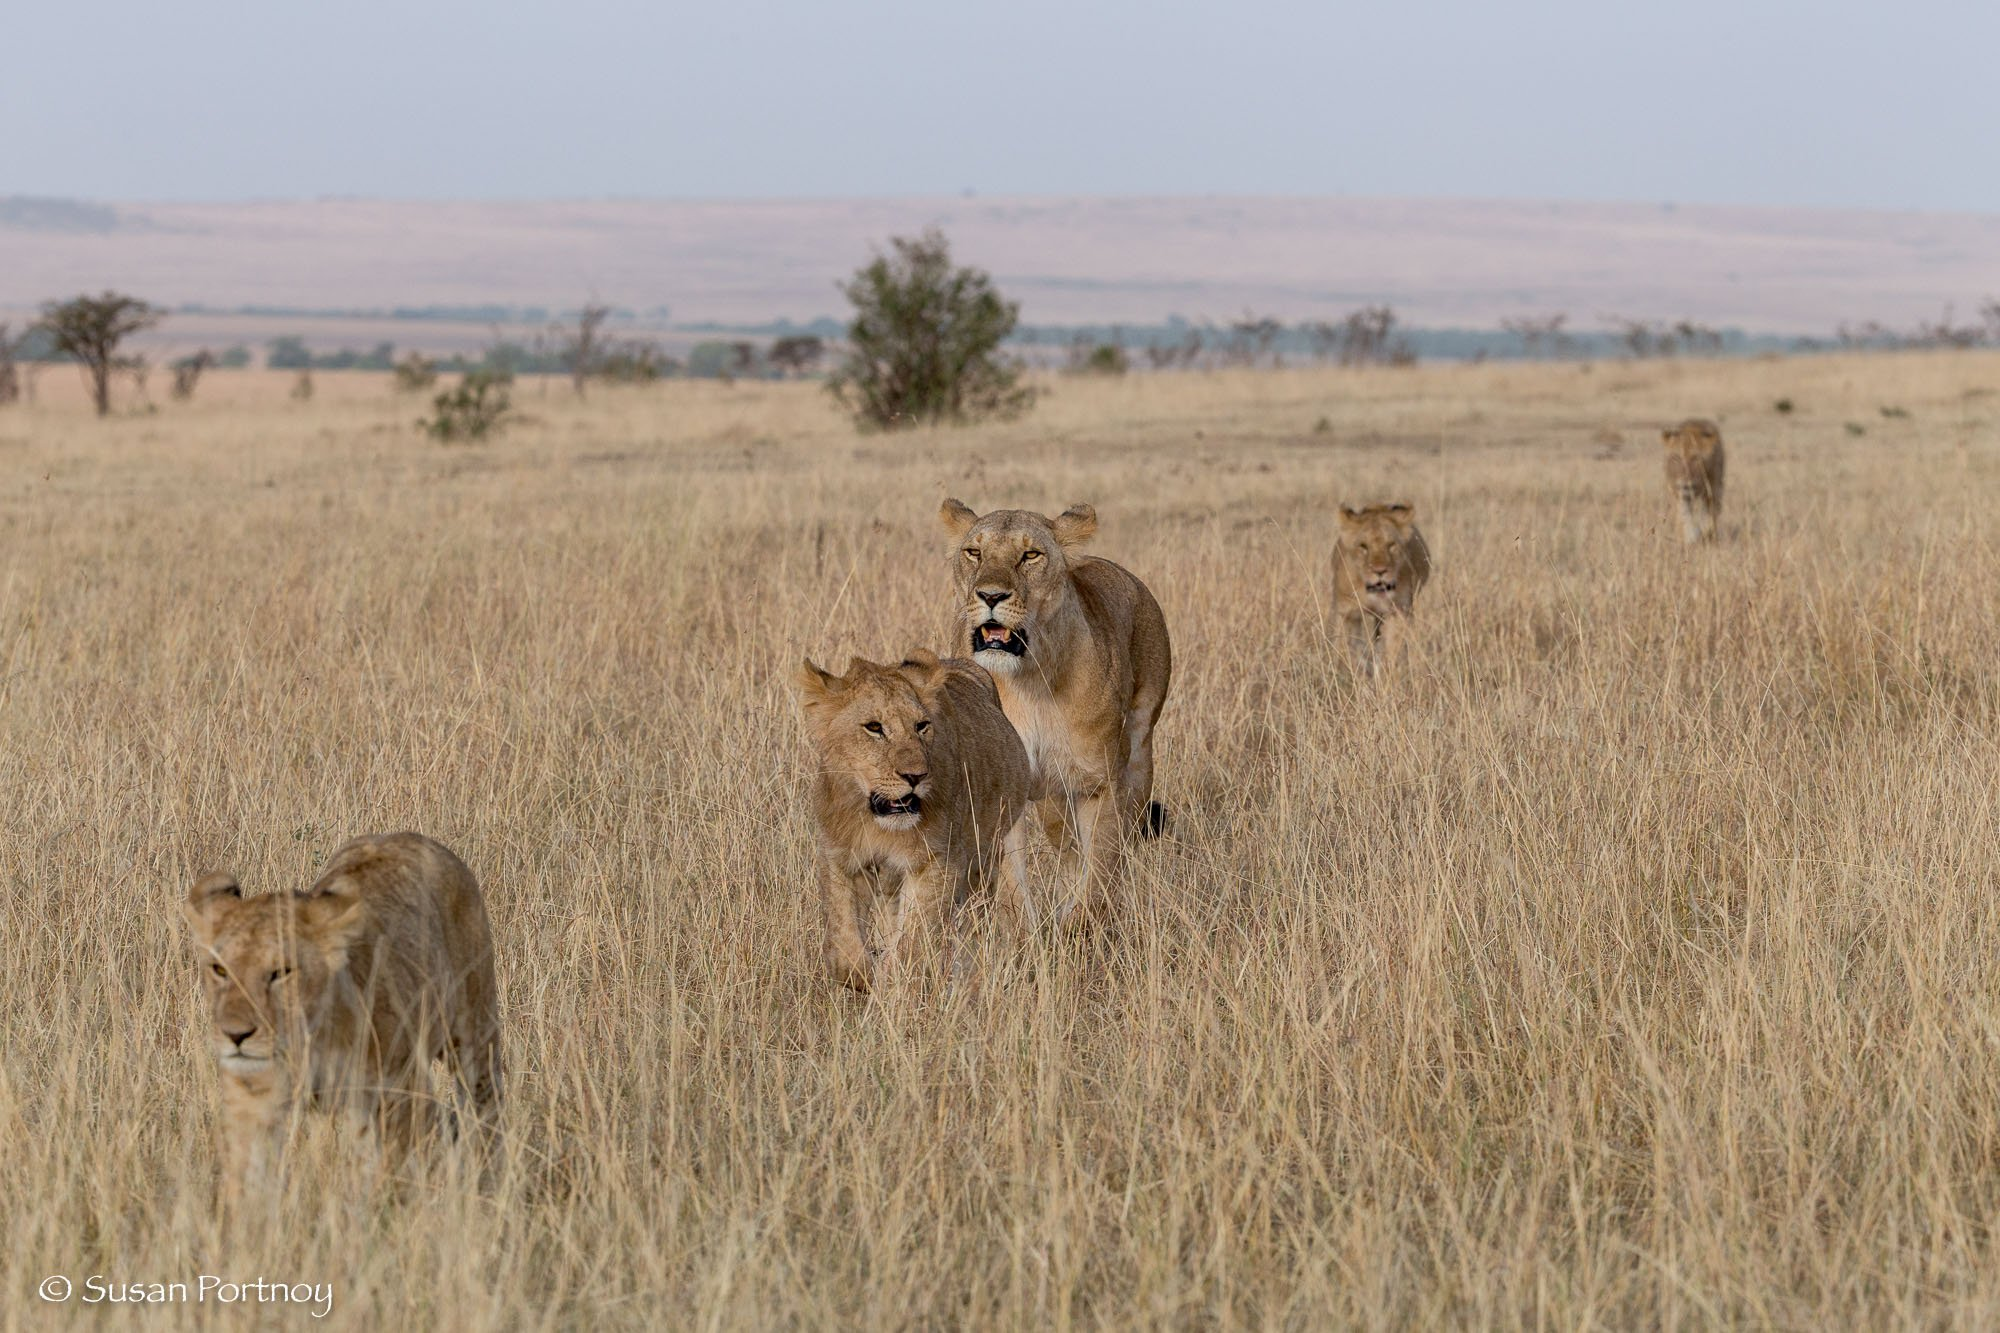 A lioness and her cubs walking in a line in the Masai Mara.